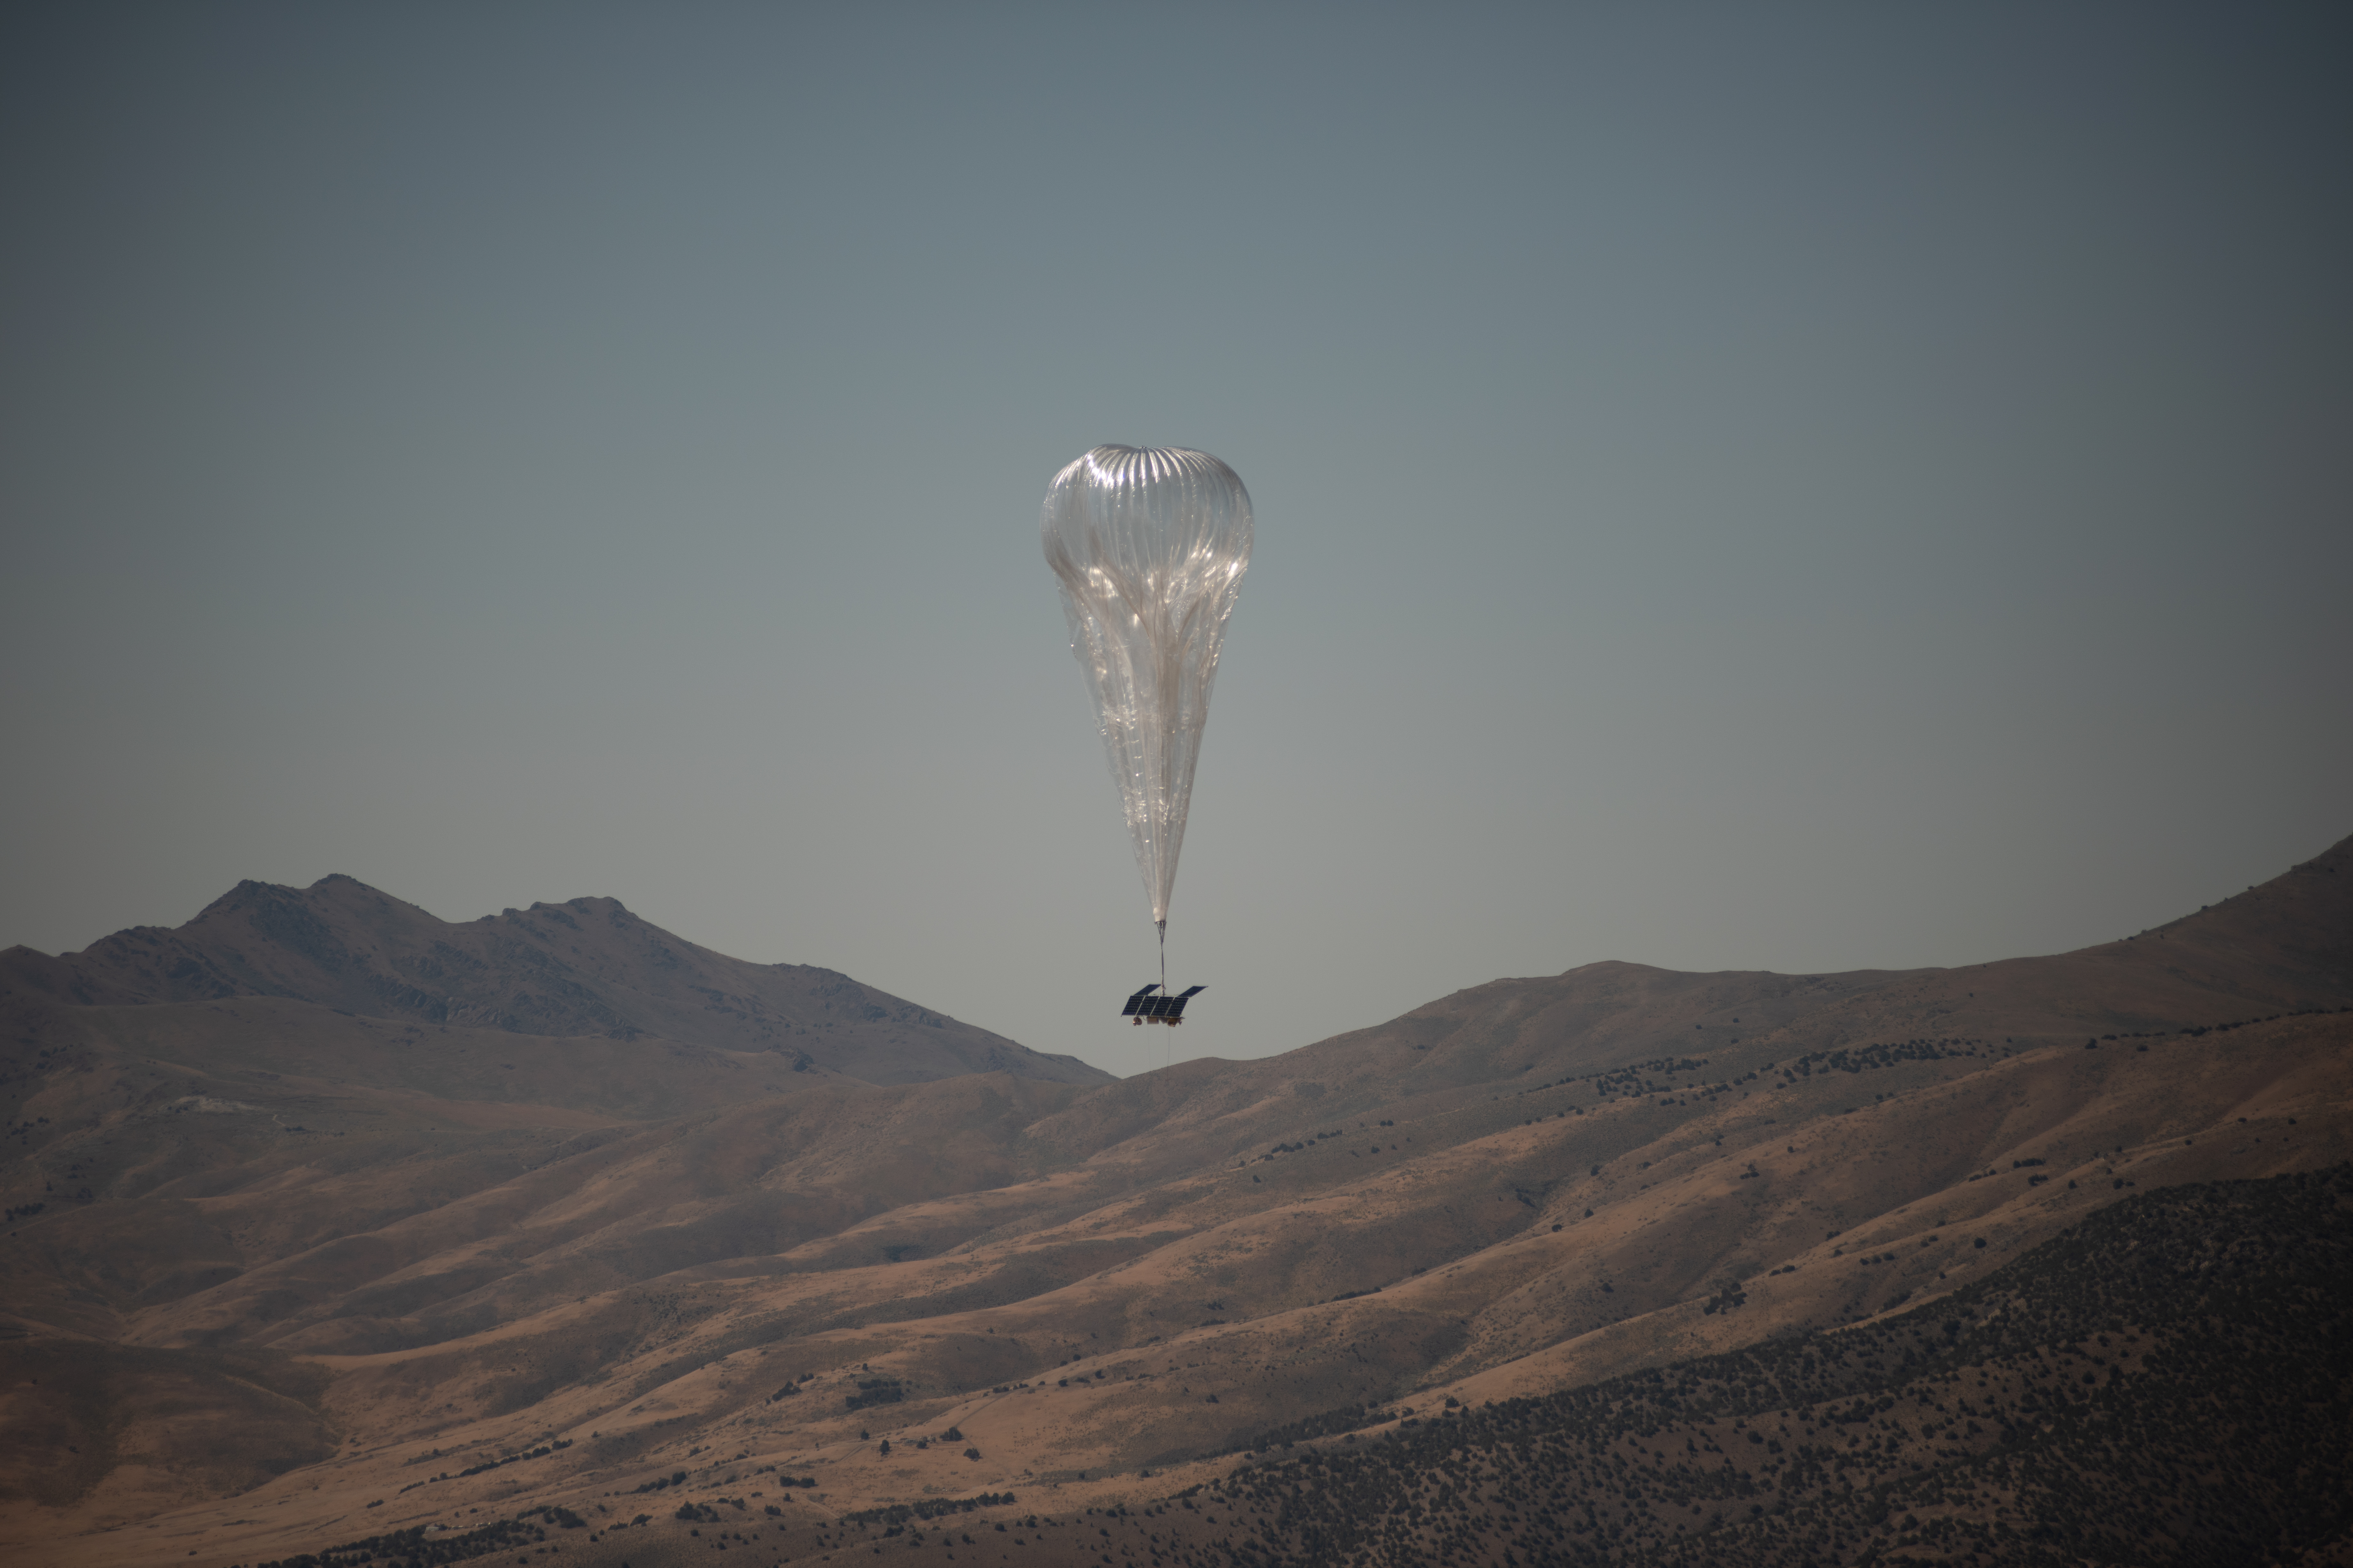 Loon's fleet of 35 balloons will serve an area of 50,000 square kilometres.